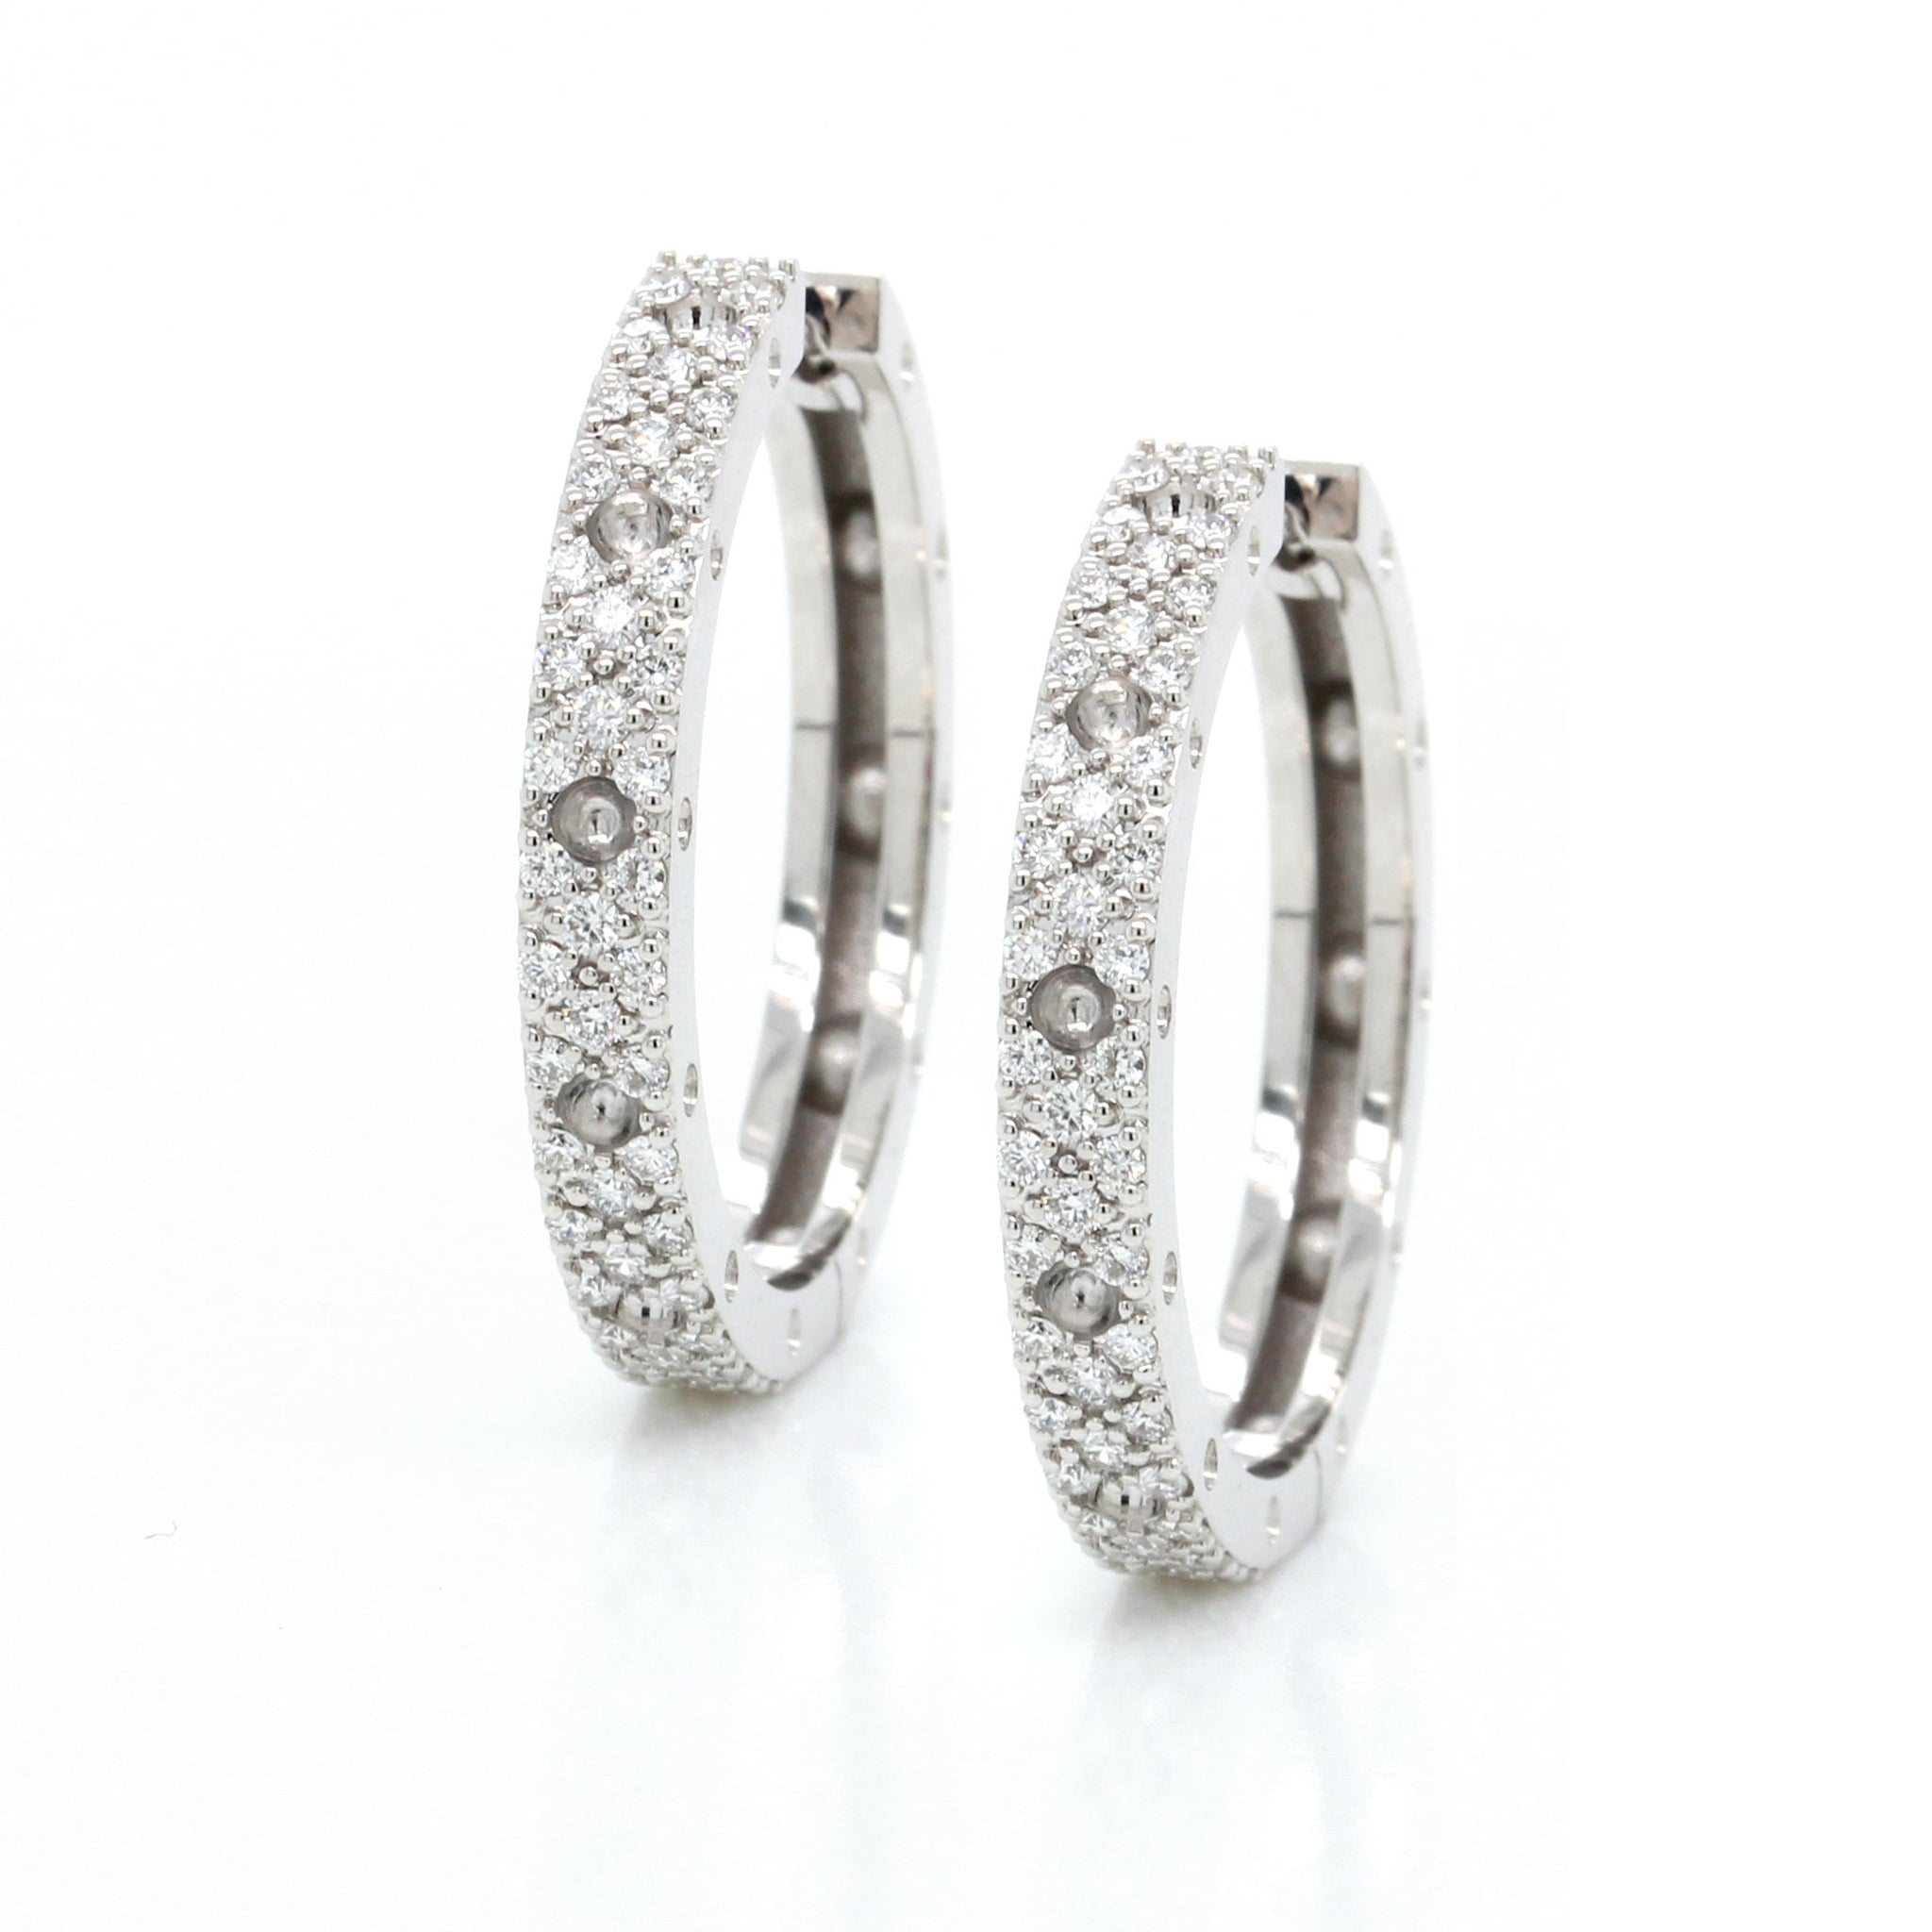 18K White Gold Diamond Pois Mois Hoop Earrings